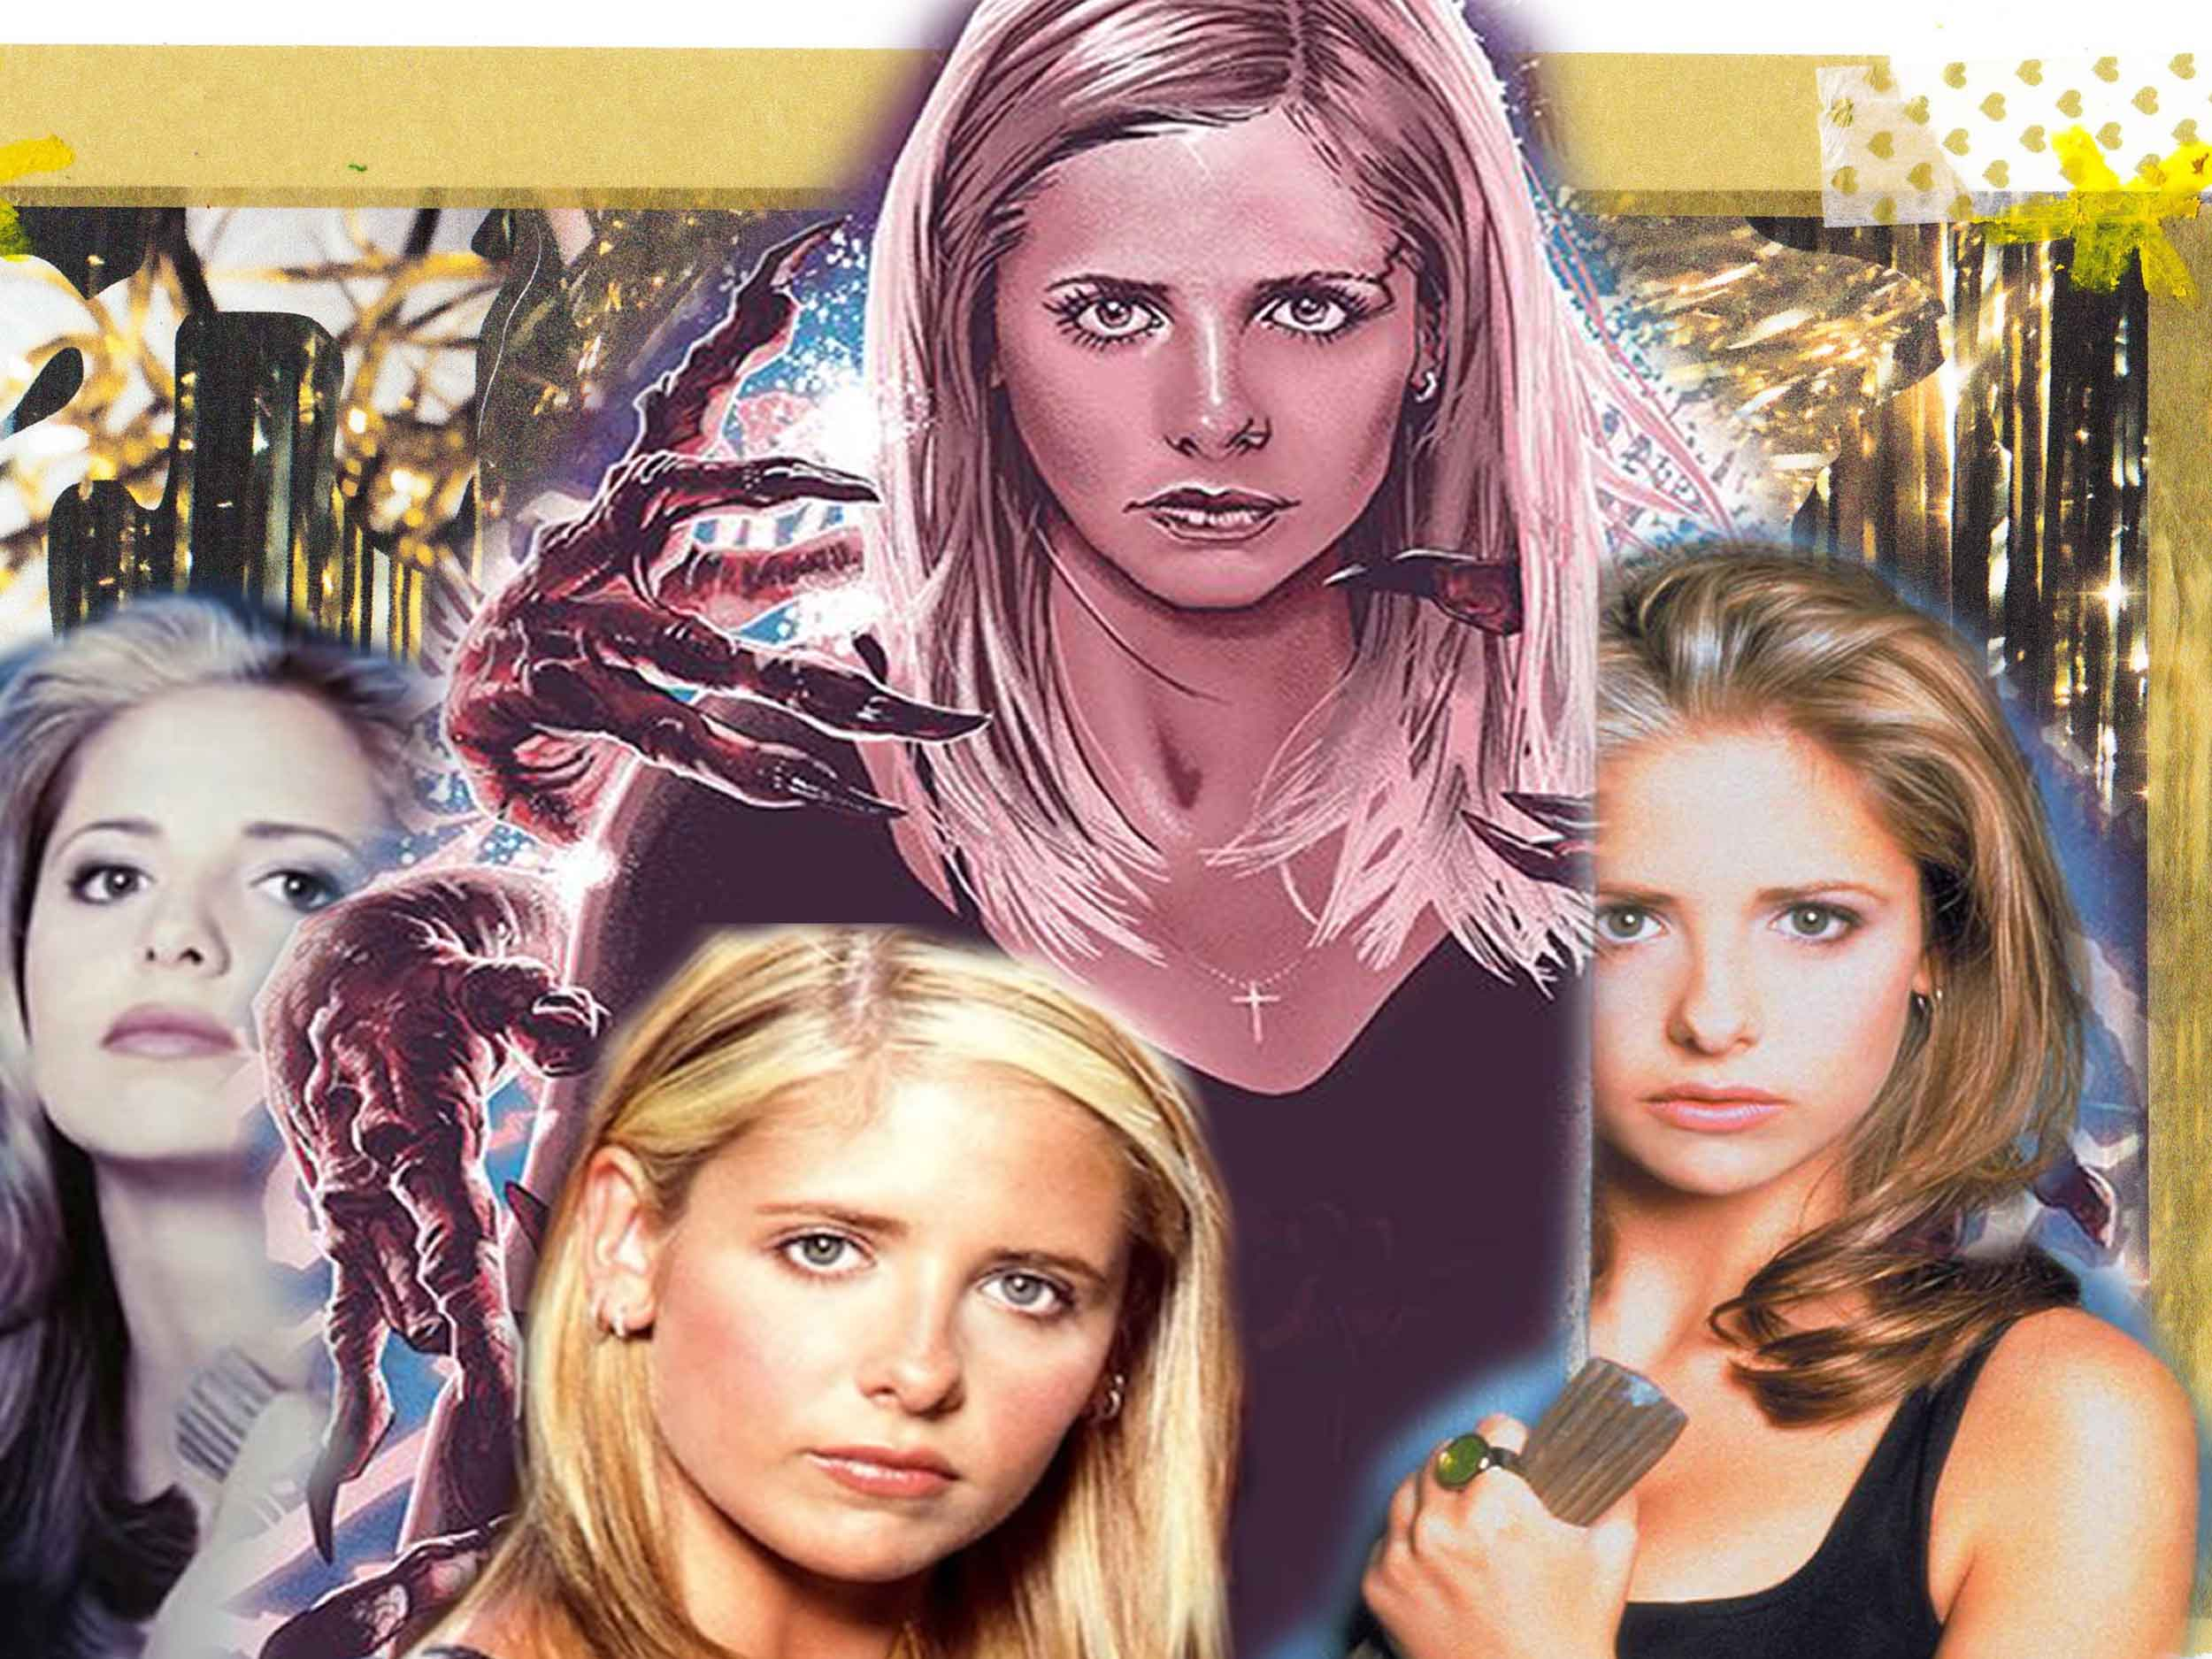 Buffy Summers said ACAB: How the '90s TV series embraced the real Big Bad